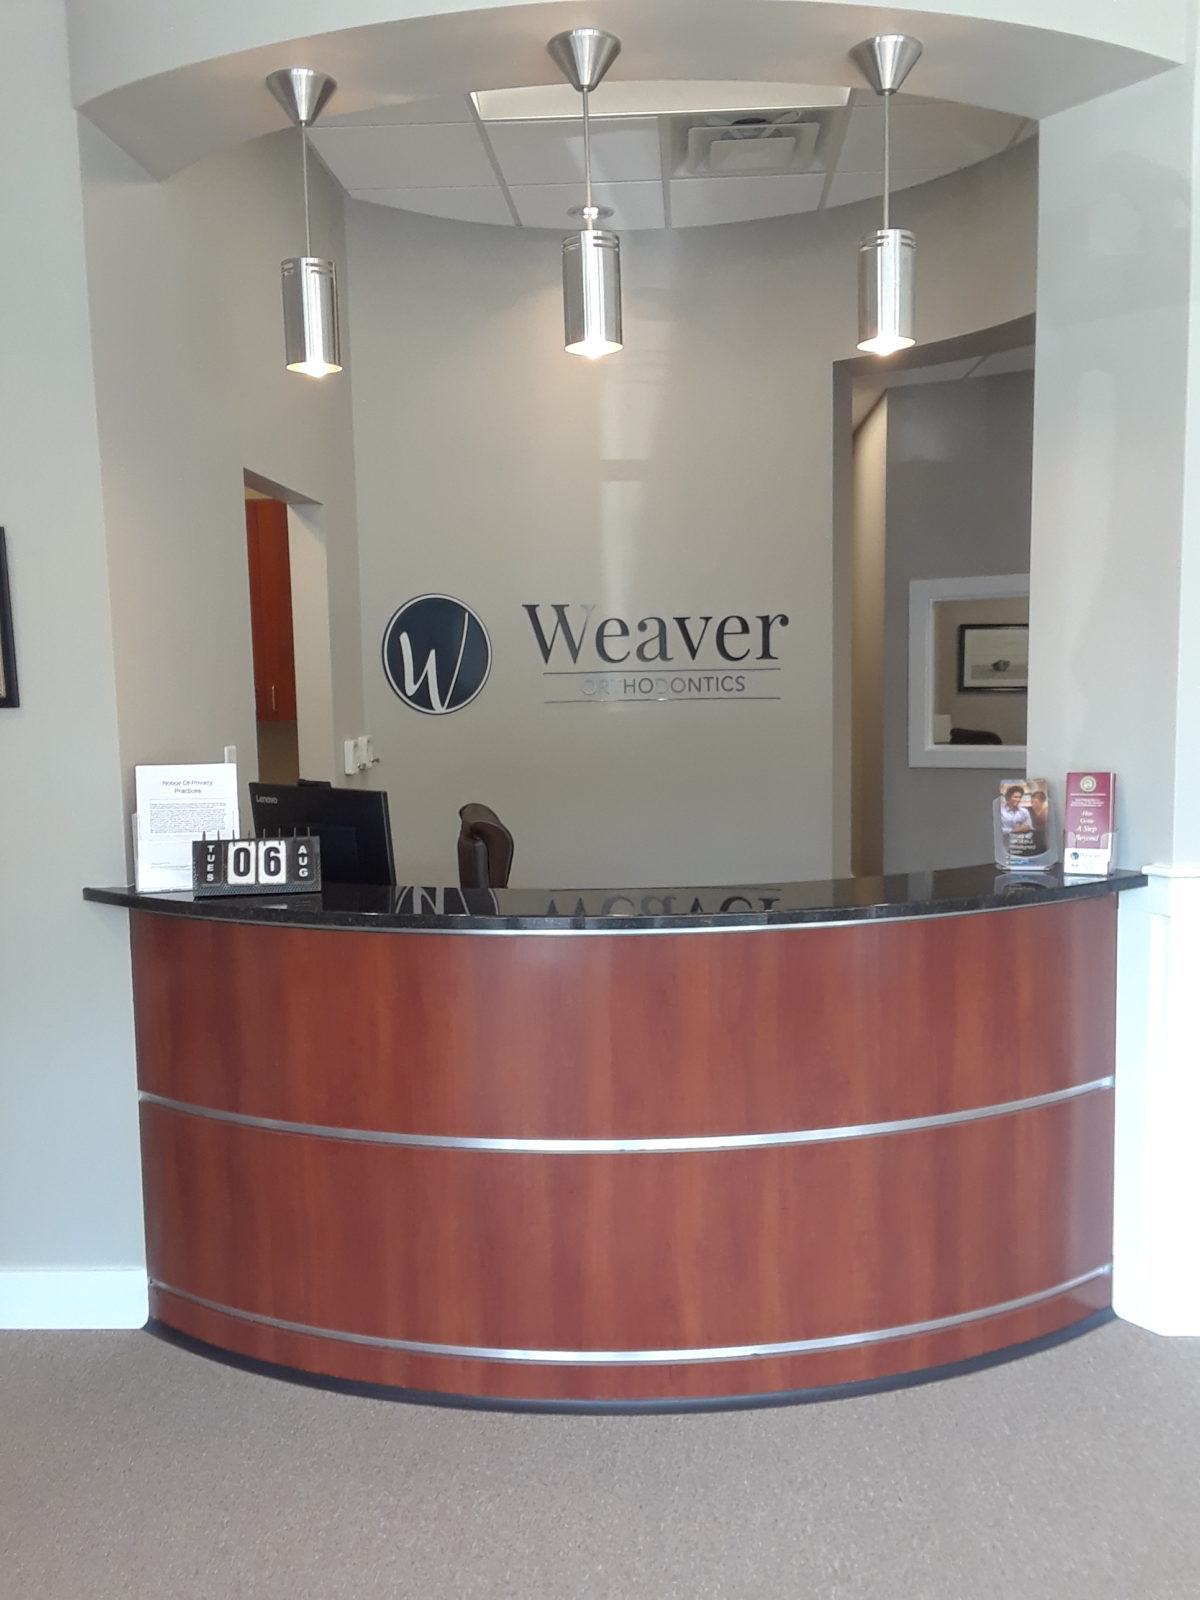 Weaver Orthodontics, Southern Pines, NC